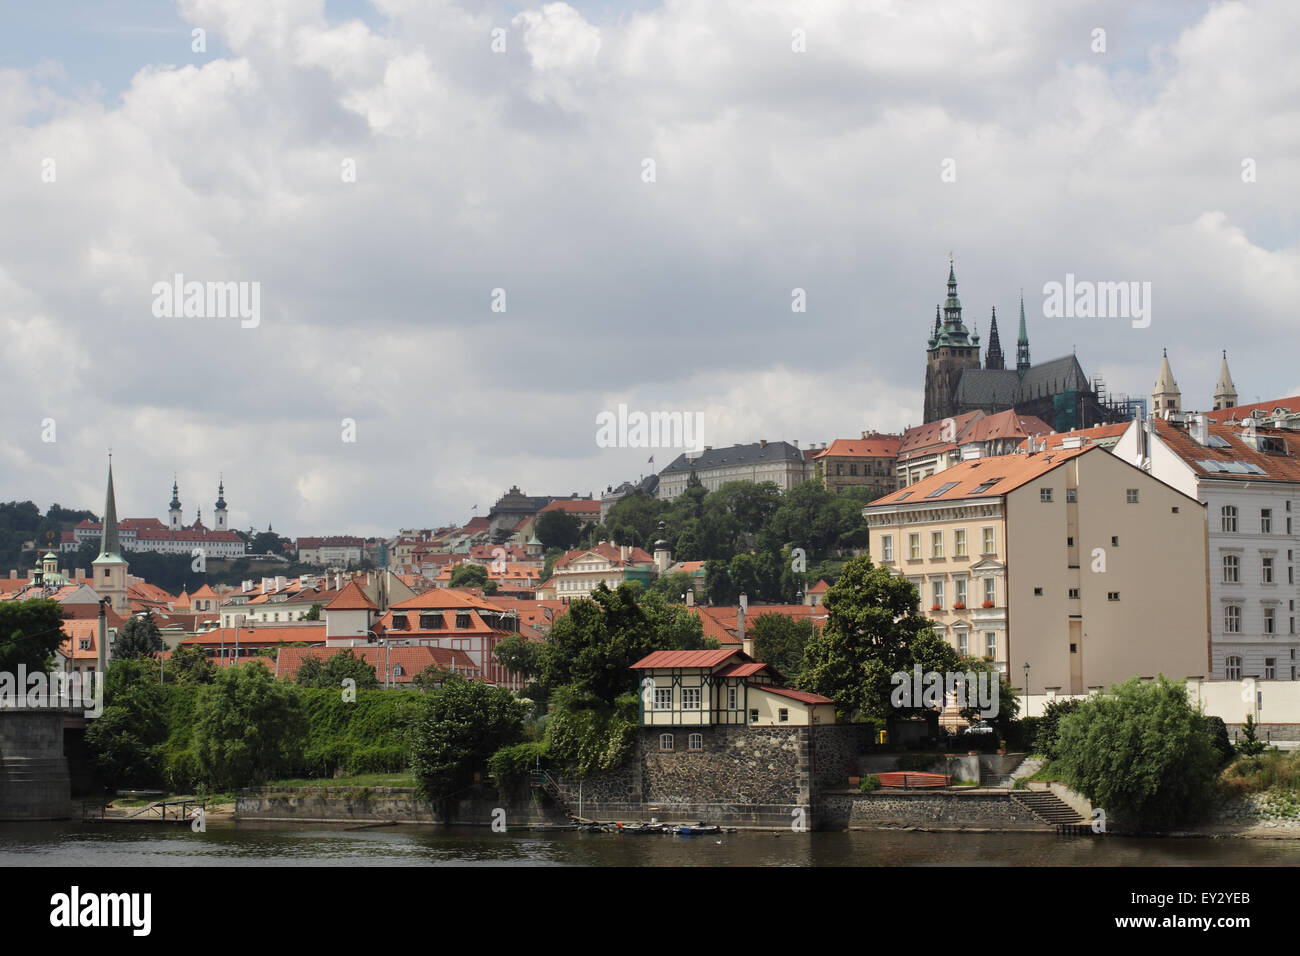 A view across Moldau in Prague, with the view of the Hrdancy Palace in the background - Stock Image